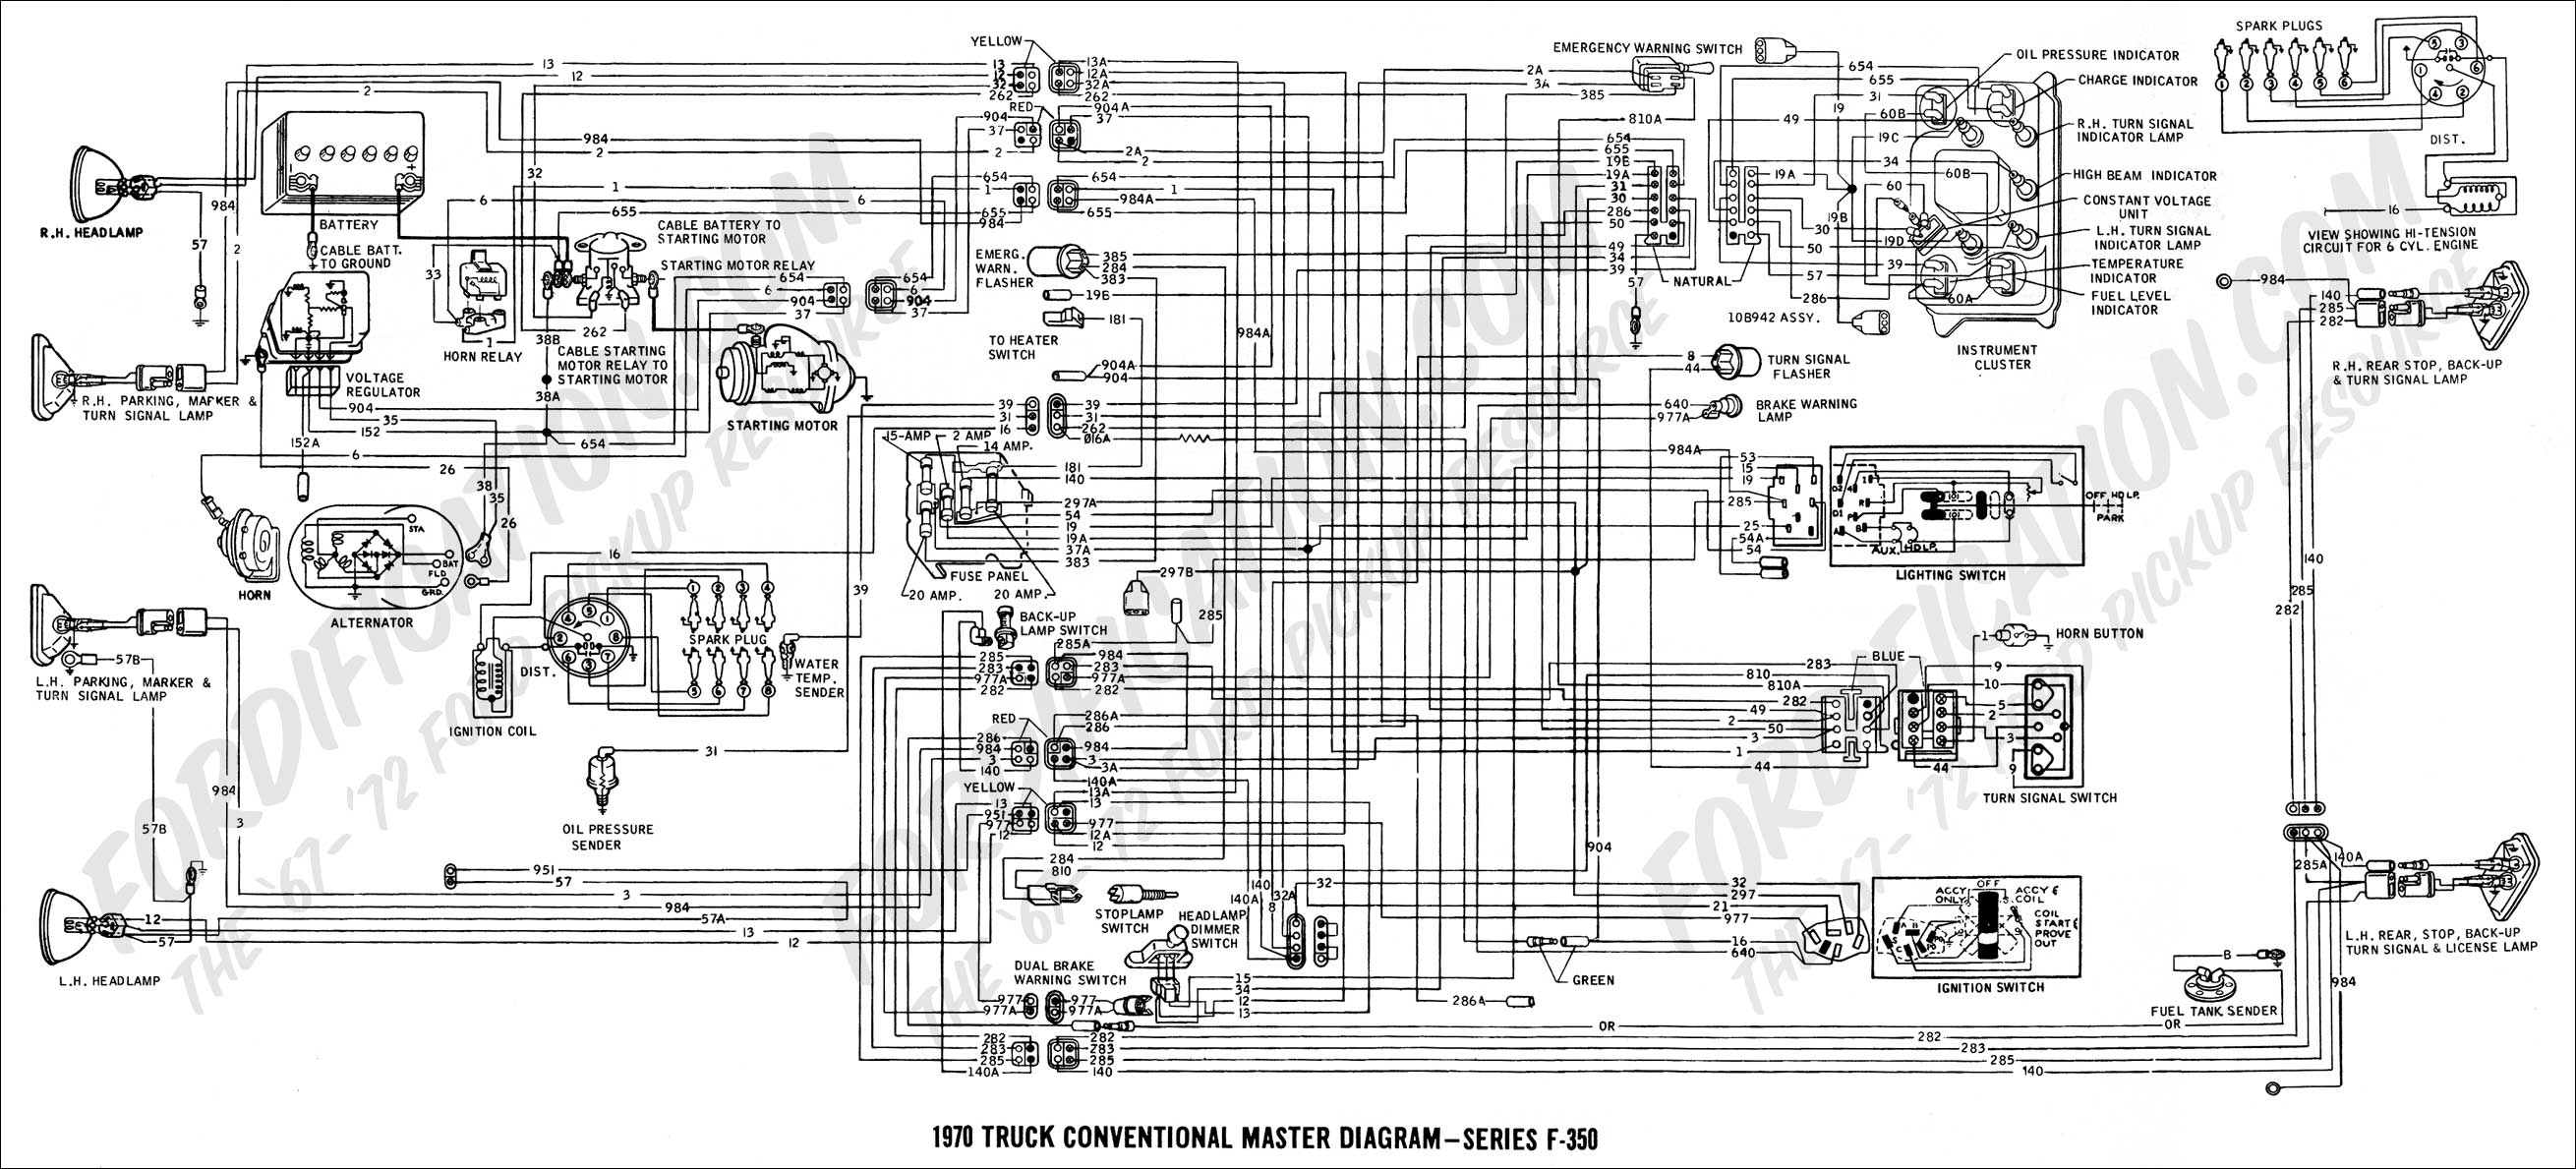 Ford Wiring Schematics Opinions About Diagram 2000 Contour Radio 1970 F100 Detailed Rh Drphilipharris Com 95